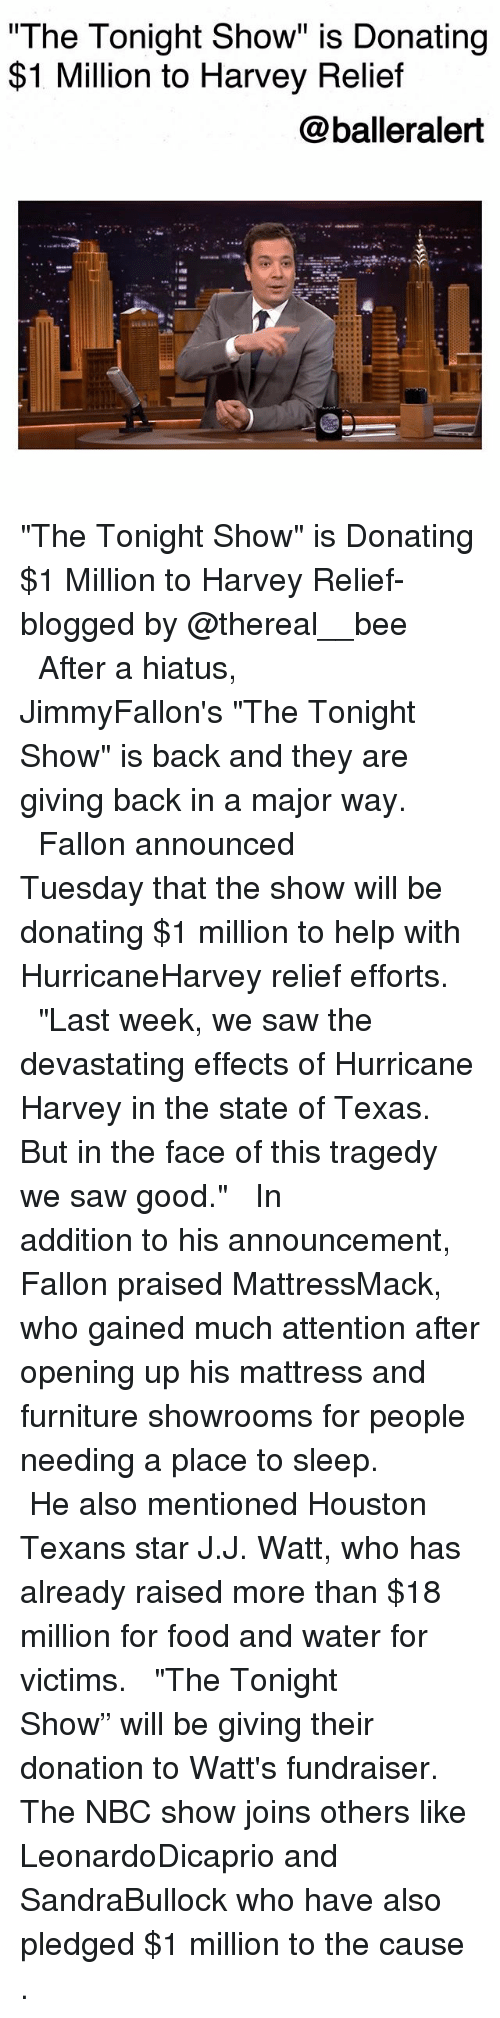 "Sawing: The Tonight Show"" is Donating  $1 Million to Harvey Relief  @balleralert  s@汽. ""The Tonight Show"" is Donating $1 Million to Harvey Relief-blogged by @thereal__bee ⠀⠀⠀⠀⠀⠀⠀⠀⠀ ⠀⠀ After a hiatus, JimmyFallon's ""The Tonight Show"" is back and they are giving back in a major way. ⠀⠀⠀⠀⠀⠀⠀⠀⠀ ⠀⠀ Fallon announced Tuesday that the show will be donating $1 million to help with HurricaneHarvey relief efforts. ⠀⠀⠀⠀⠀⠀⠀⠀⠀ ⠀⠀ ""Last week, we saw the devastating effects of Hurricane Harvey in the state of Texas. But in the face of this tragedy we saw good."" ⠀⠀⠀⠀⠀⠀⠀⠀⠀ ⠀⠀ In addition to his announcement, Fallon praised MattressMack, who gained much attention after opening up his mattress and furniture showrooms for people needing a place to sleep. ⠀⠀⠀⠀⠀⠀⠀⠀⠀ ⠀⠀ He also mentioned Houston Texans star J.J. Watt, who has already raised more than $18 million for food and water for victims. ⠀⠀⠀⠀⠀⠀⠀⠀⠀ ⠀⠀ ""The Tonight Show"" will be giving their donation to Watt's fundraiser. The NBC show joins others like LeonardoDicaprio and SandraBullock who have also pledged $1 million to the cause ."